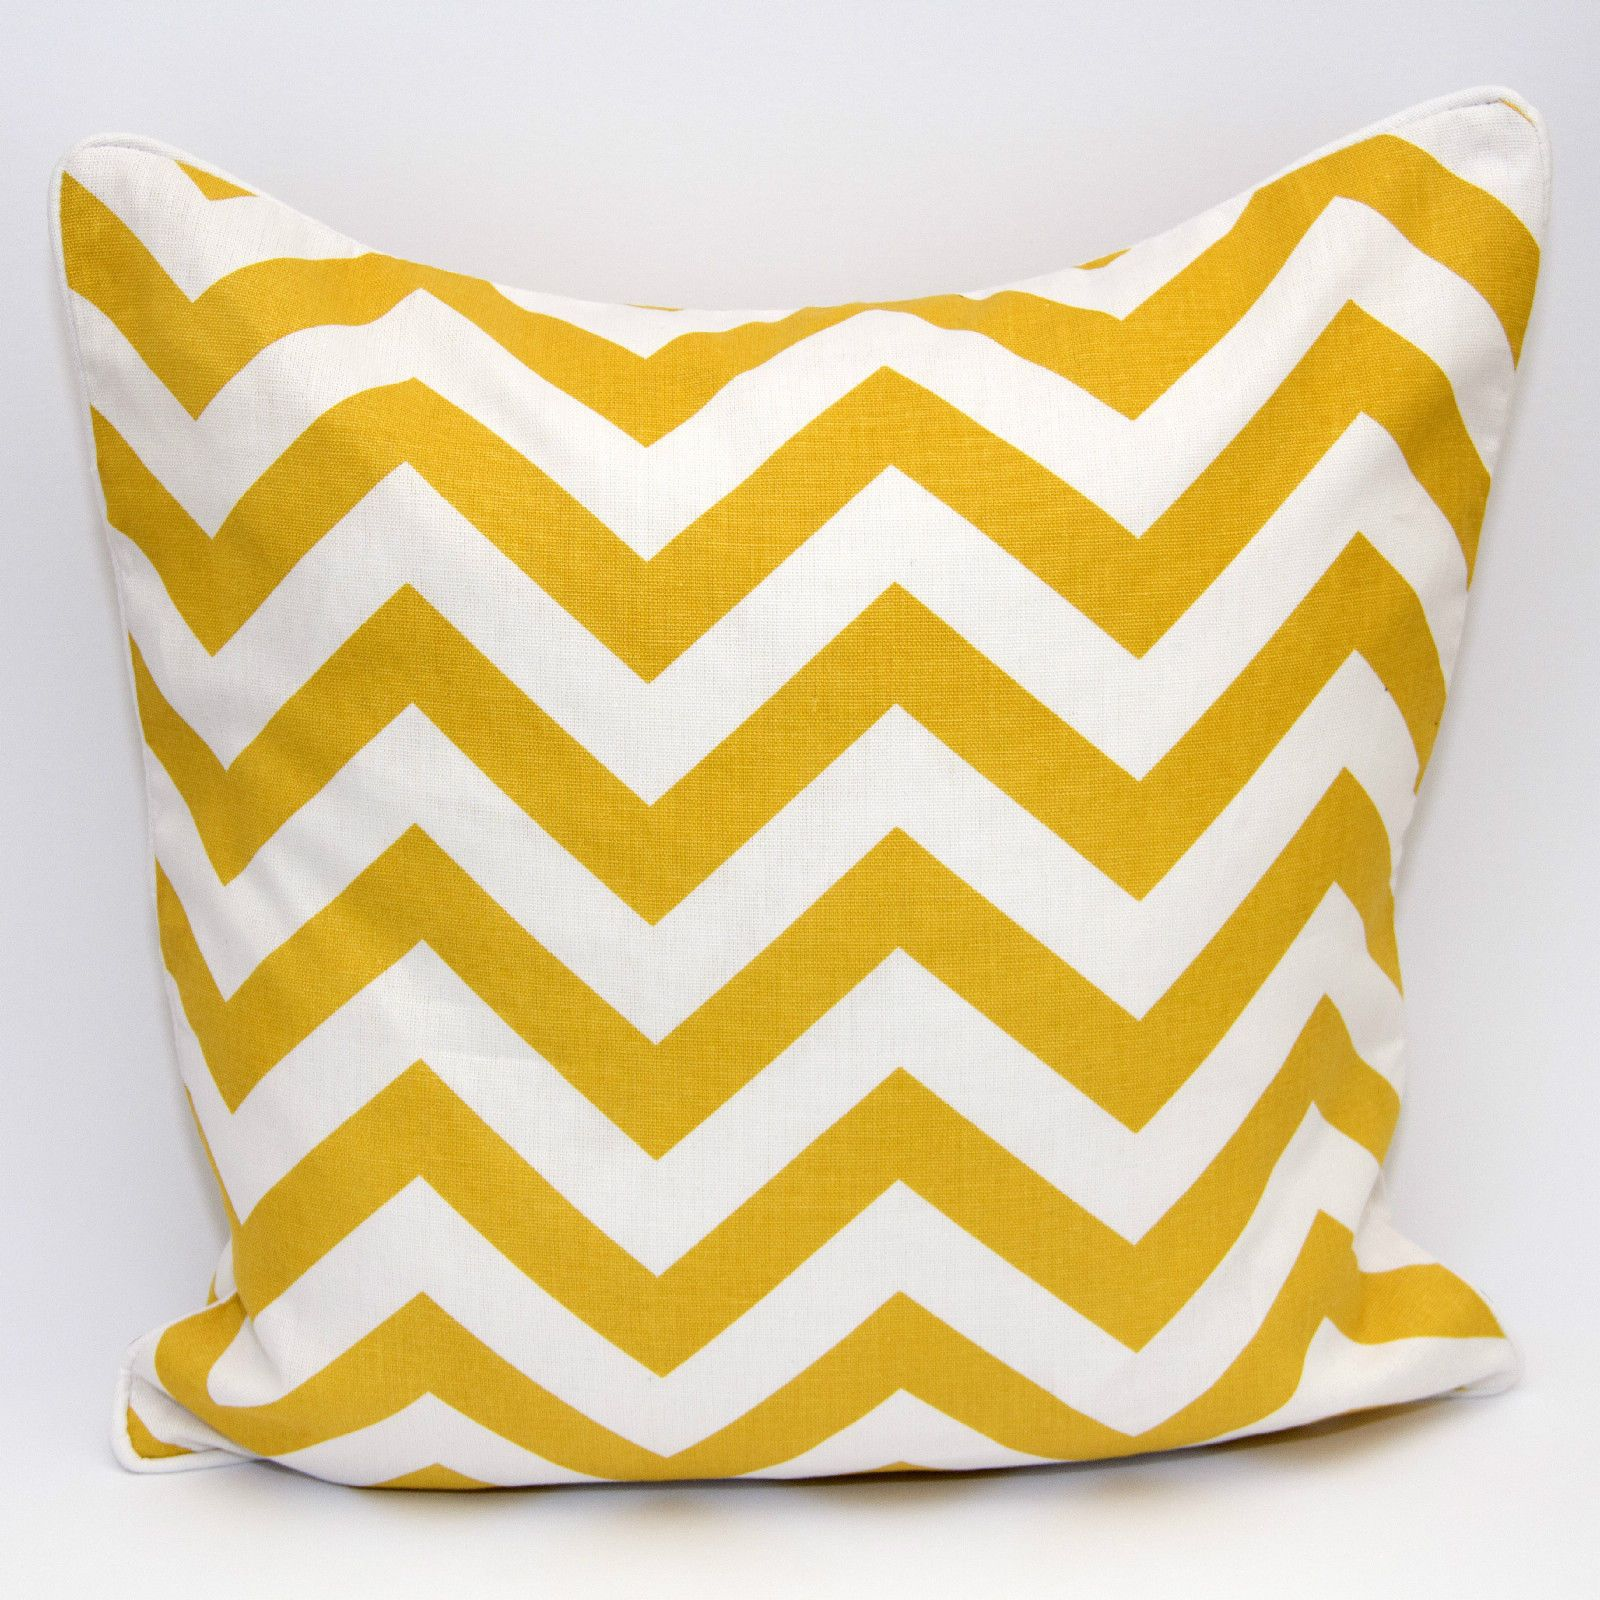 100% cotton twill pillow covers